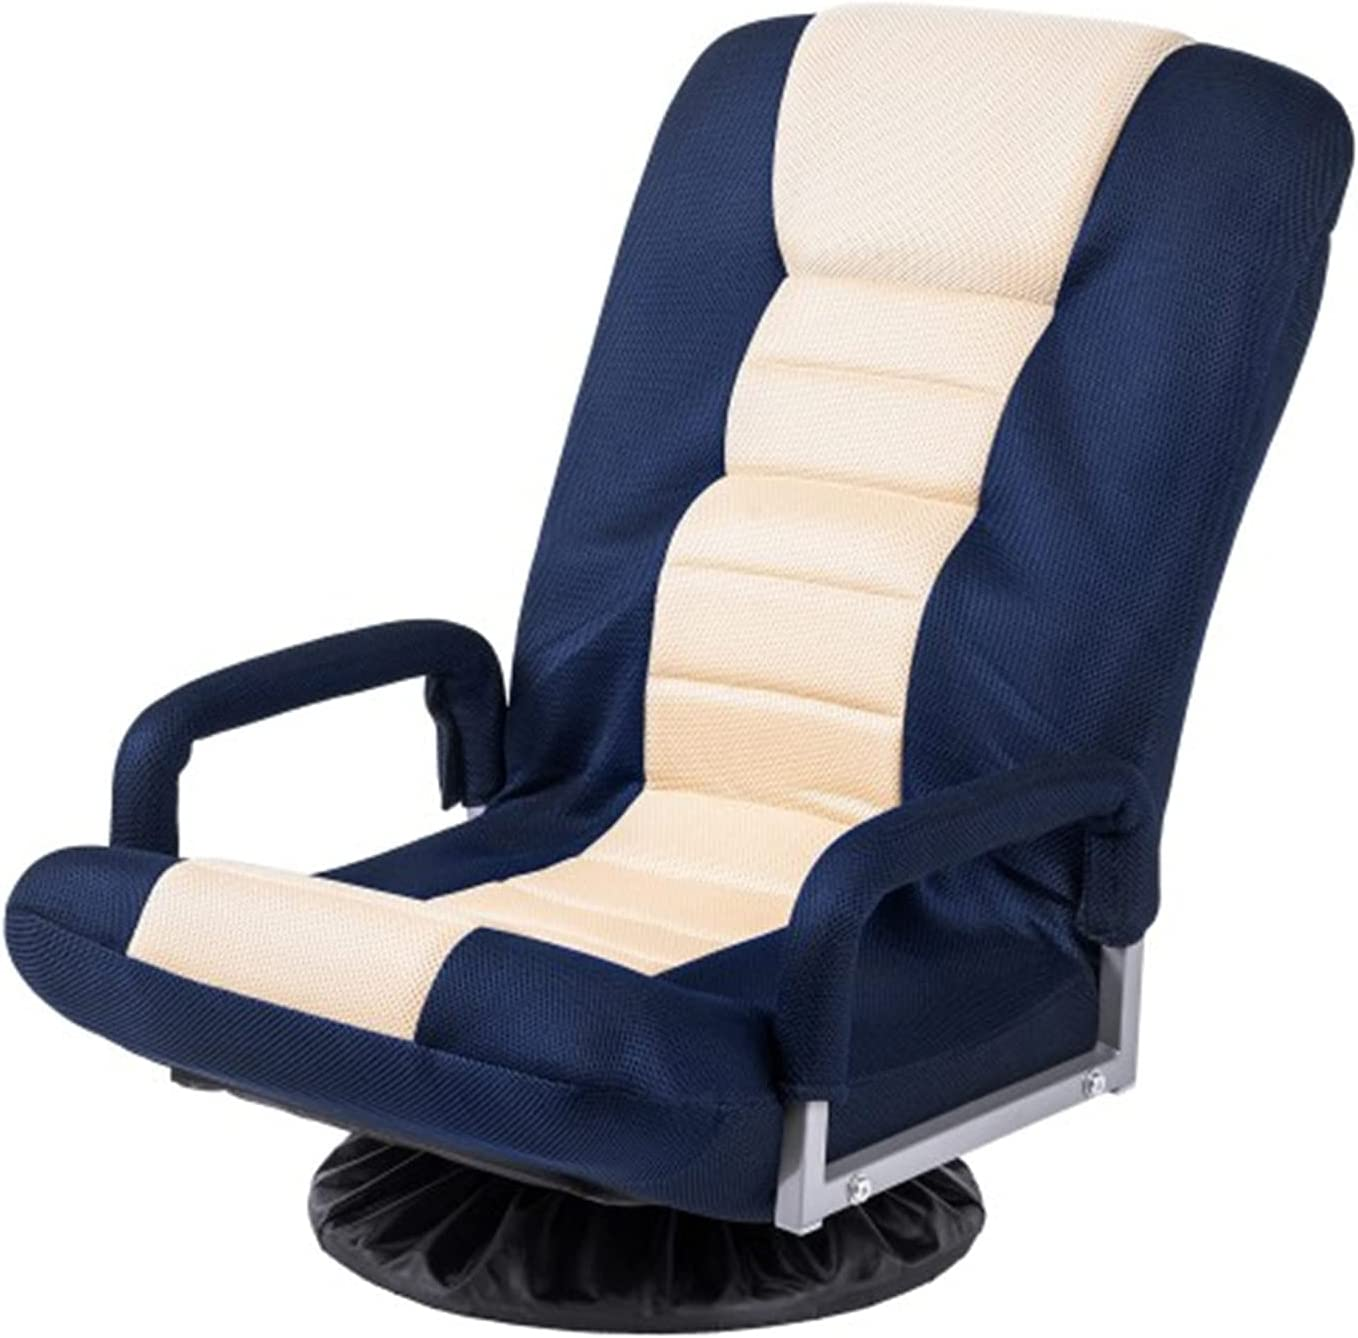 5 ☆ very popular Sofa Chair Swivel Gaming 7 Flo Max 84% OFF Folding Position Adjustable